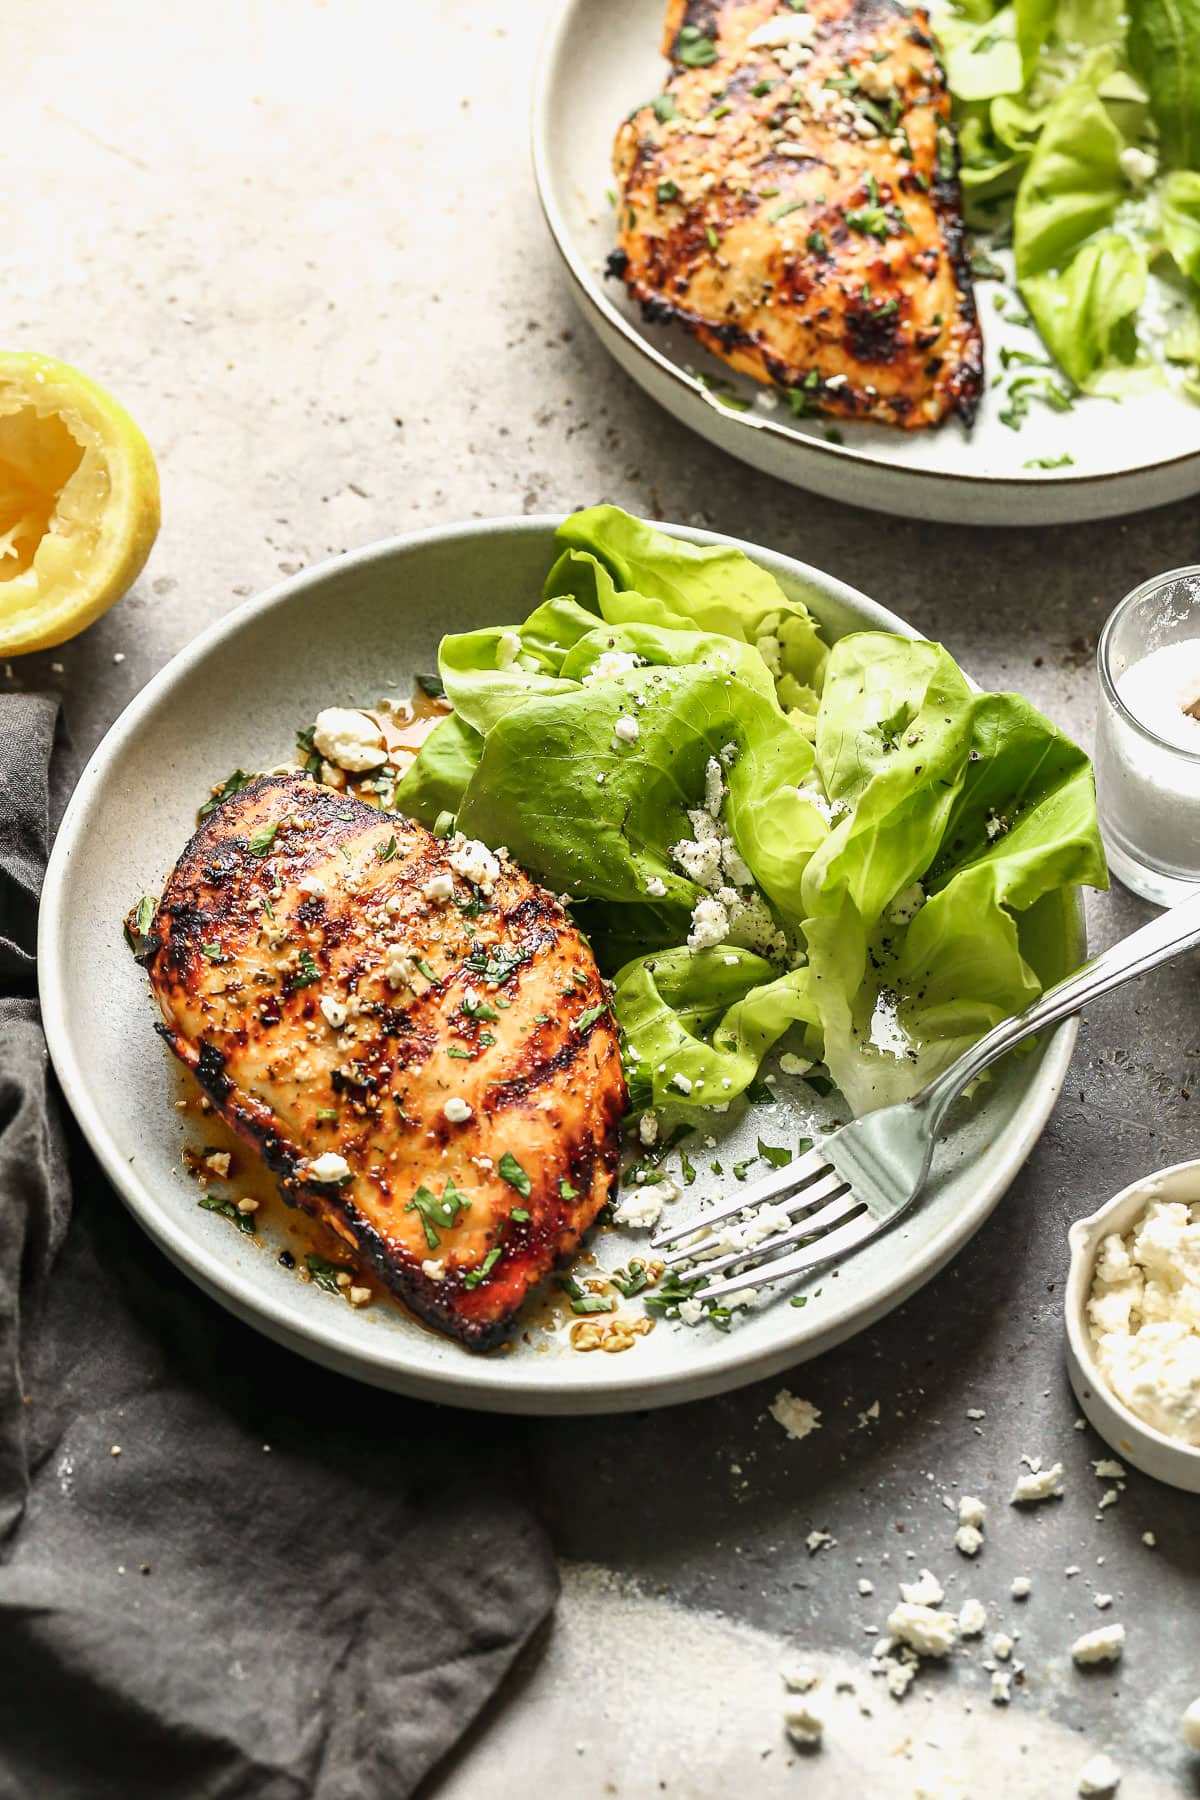 Grilled chicken breast and salad on a plate